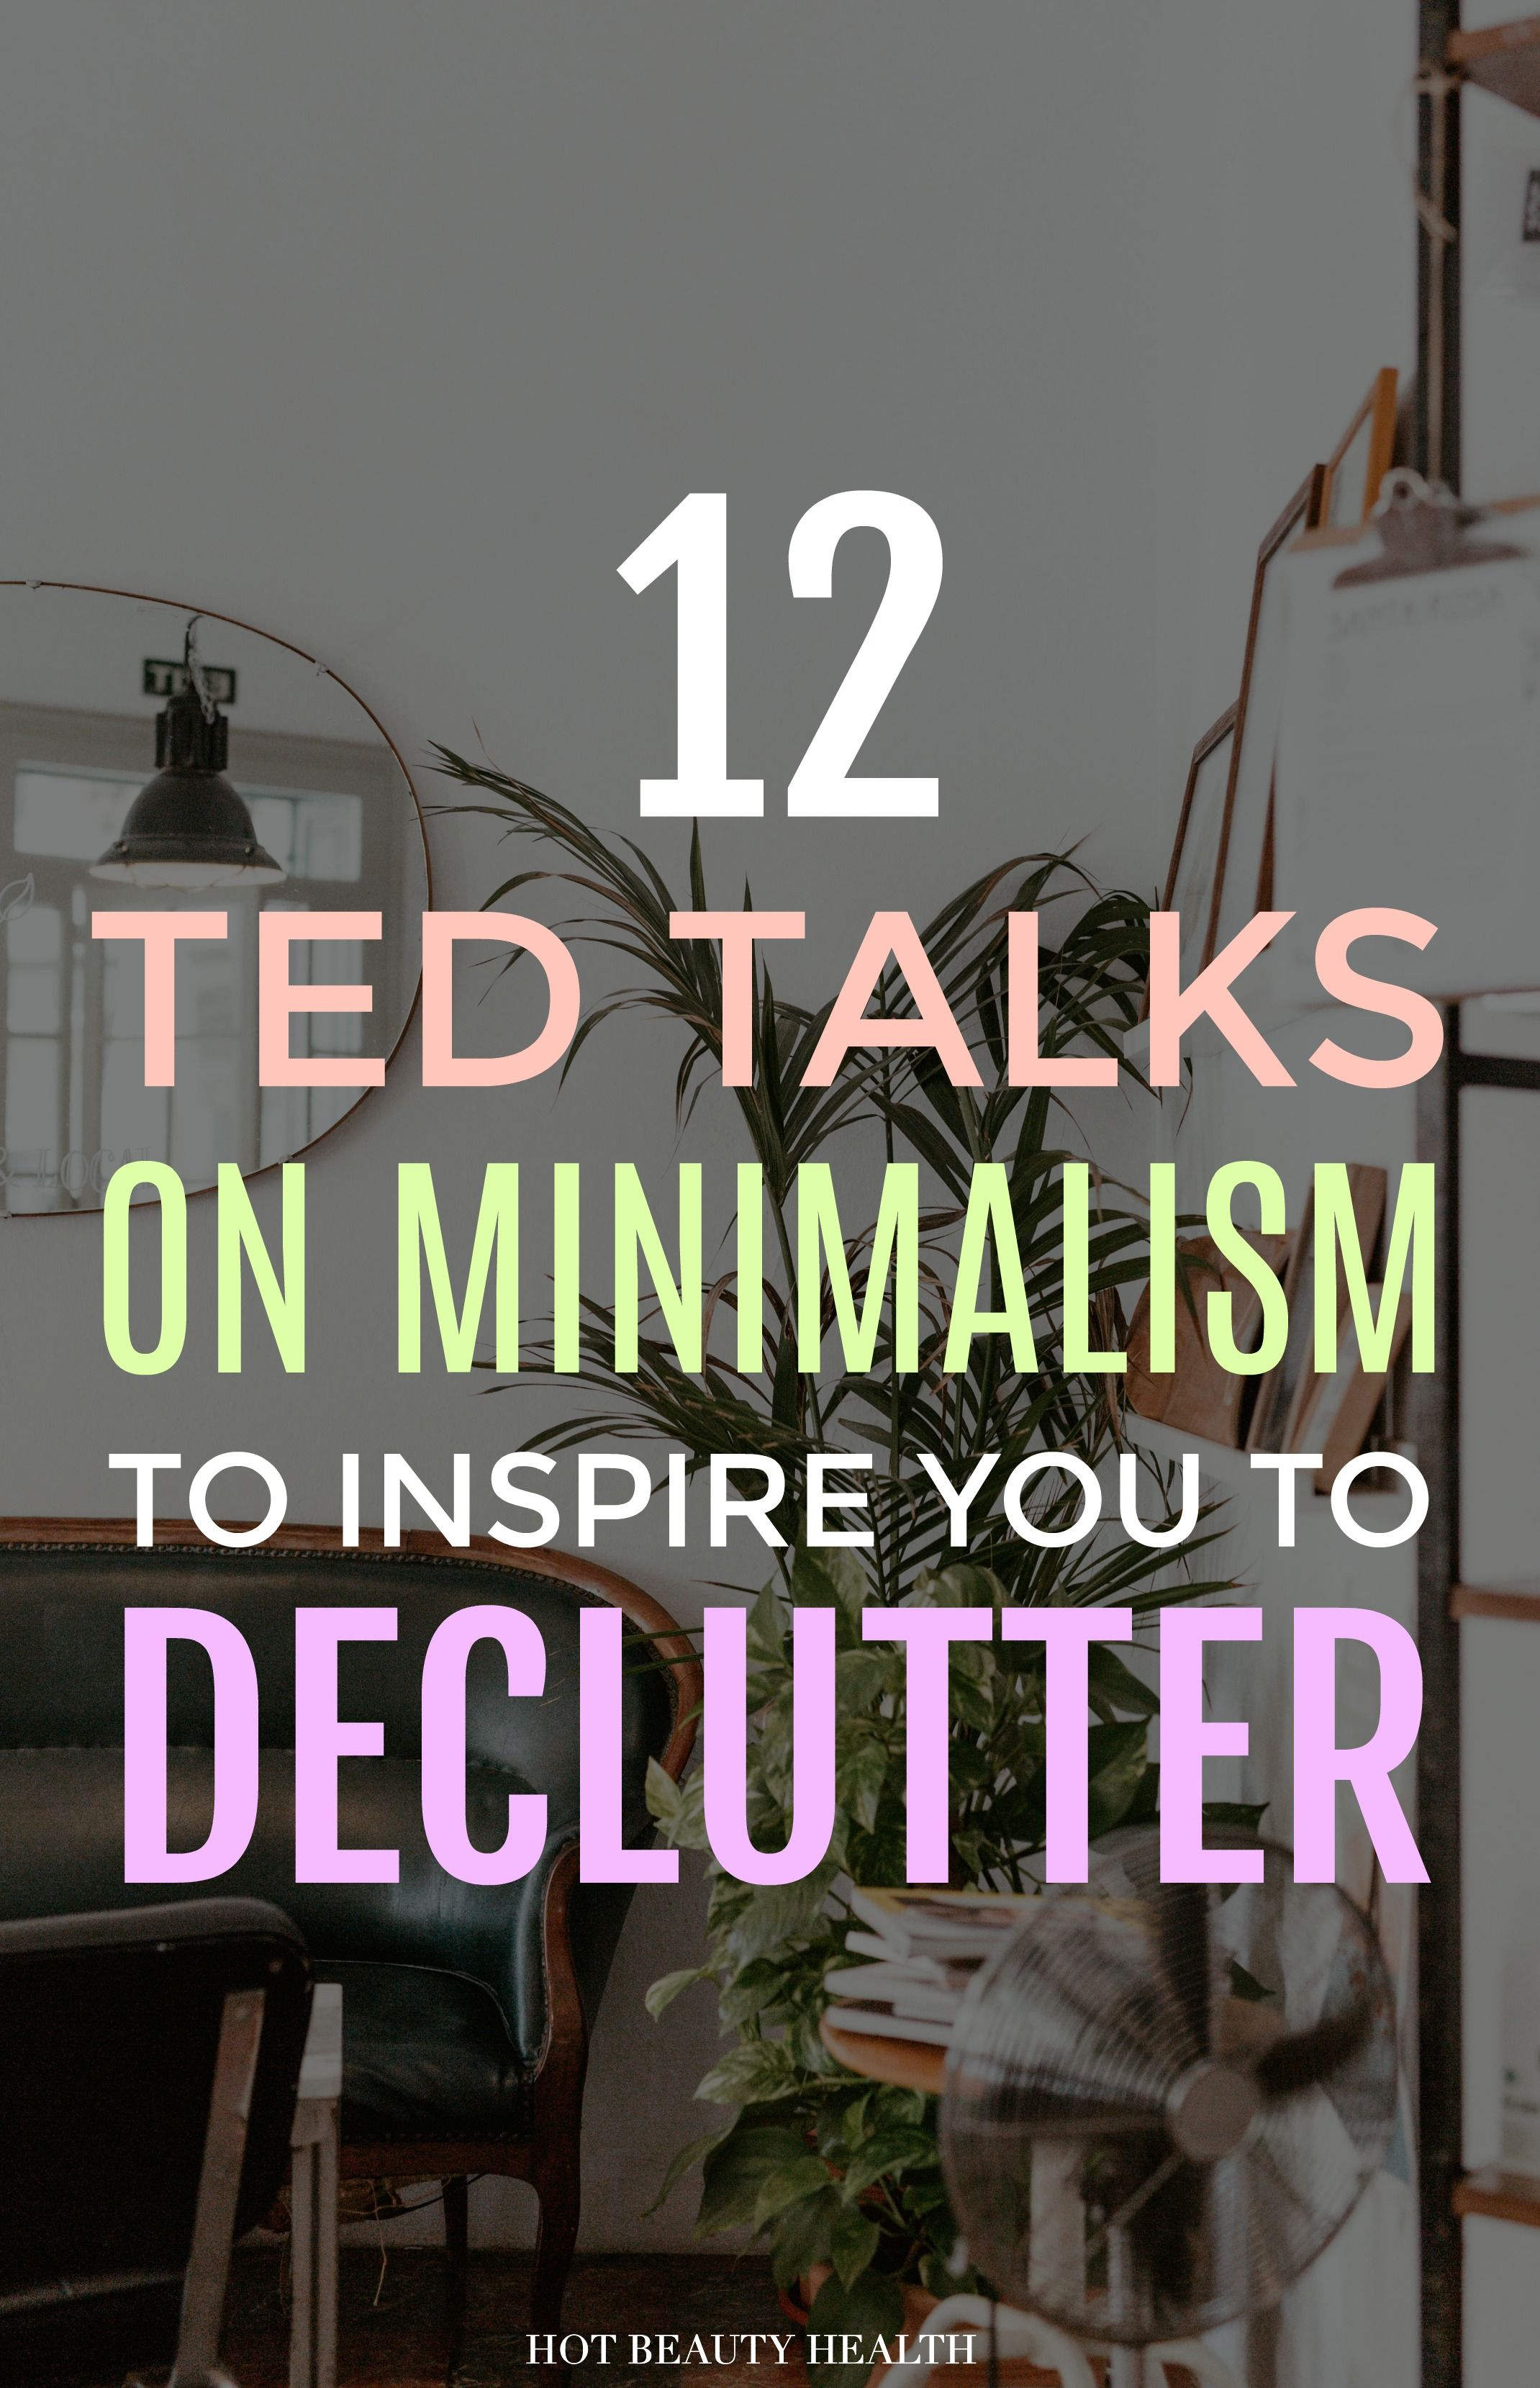 Want to live the minimalist lifestyle but don't know where to start with the decluttering process? These inspirational TED Talks about minimalism and spending less will make you want to declutter and simplify your home and life now! #tedtalks #minimalism #minimalistlifestyle